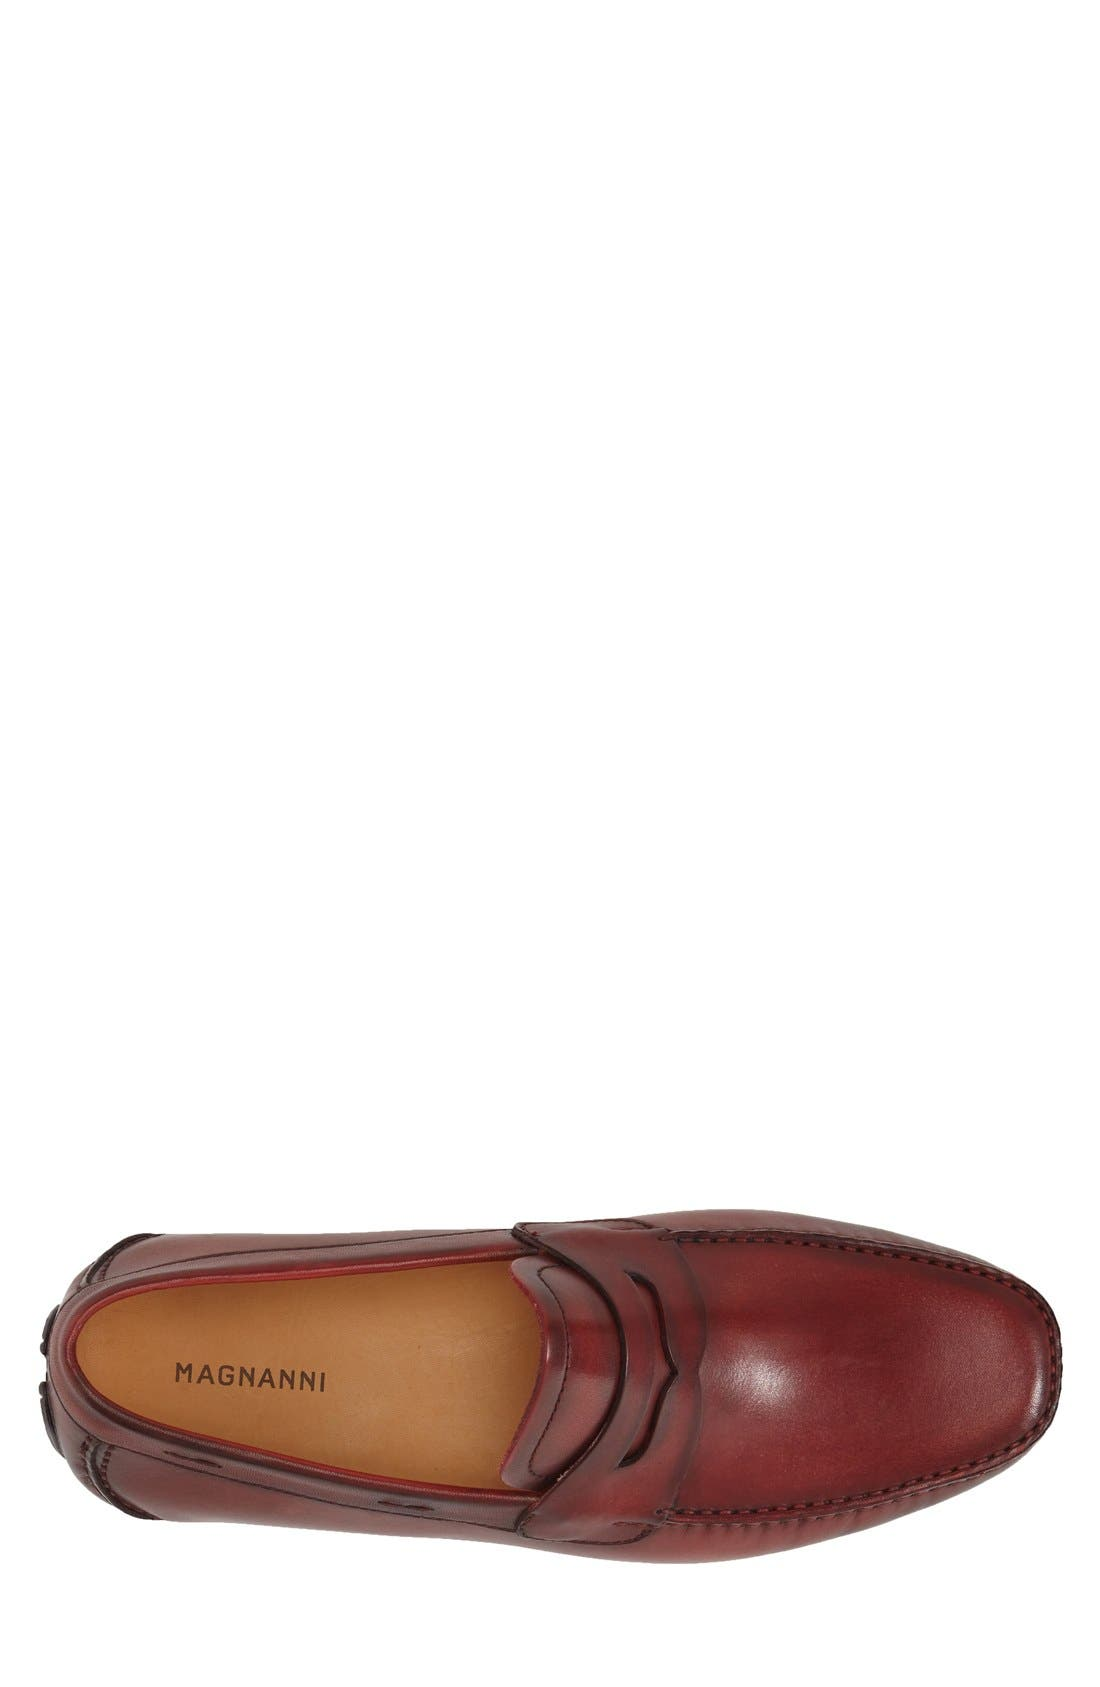 'Dylan' Leather Driving Shoe,                             Alternate thumbnail 12, color,